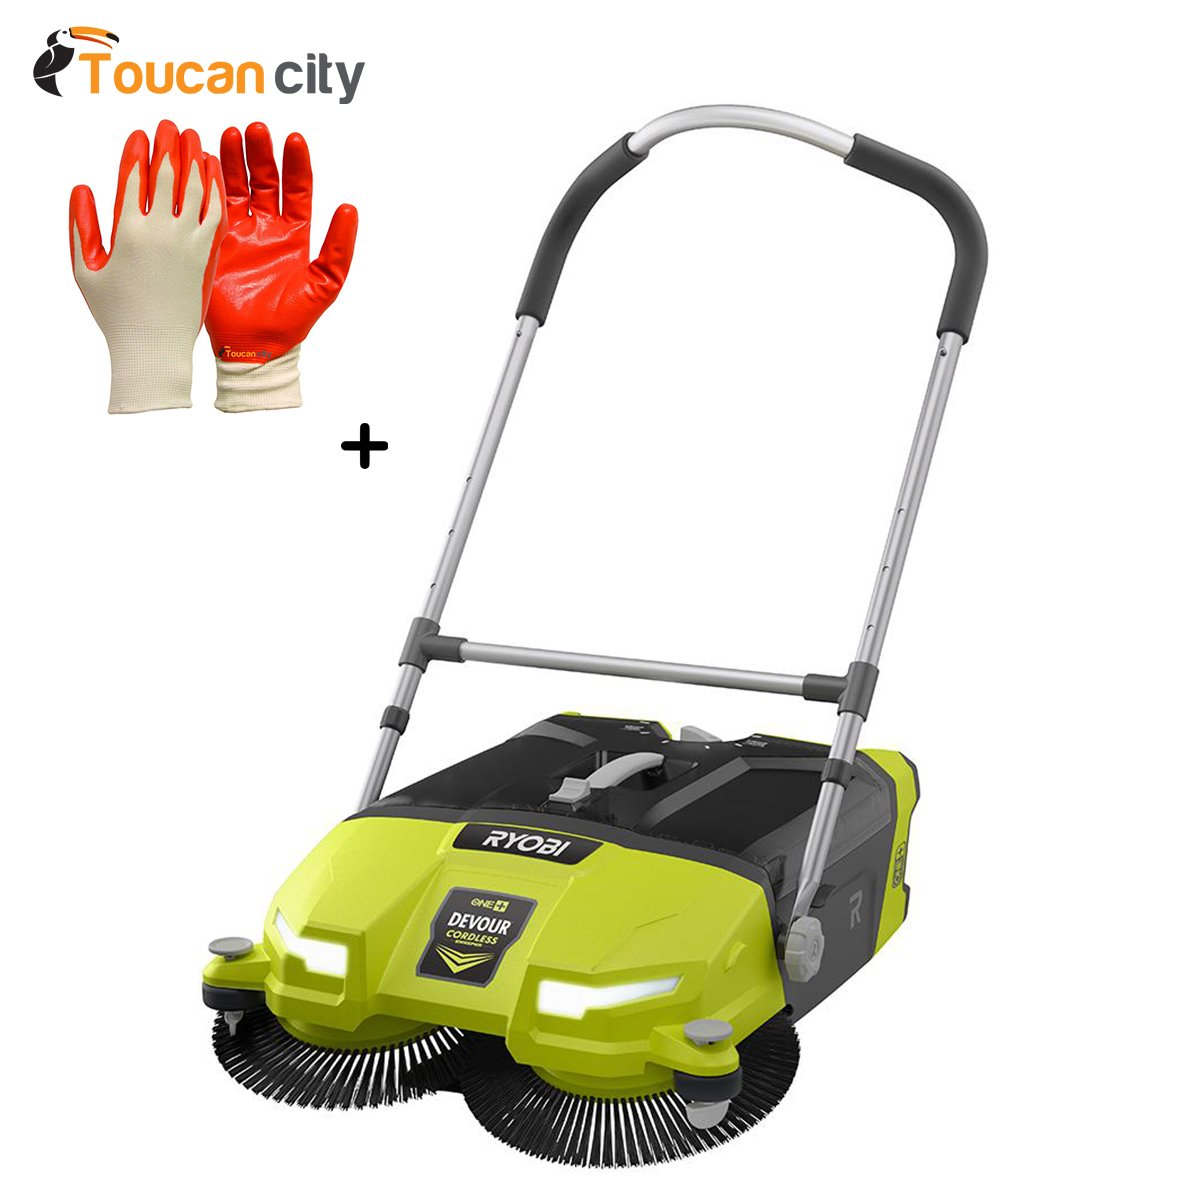 Ryobi 18-Volt 4.5 Gal. Devour Debris Sweeper (Tool-Only) P3260 and Toucan City Nitrile Dip Gloves 5-Pack by Toucan City (Image #1)